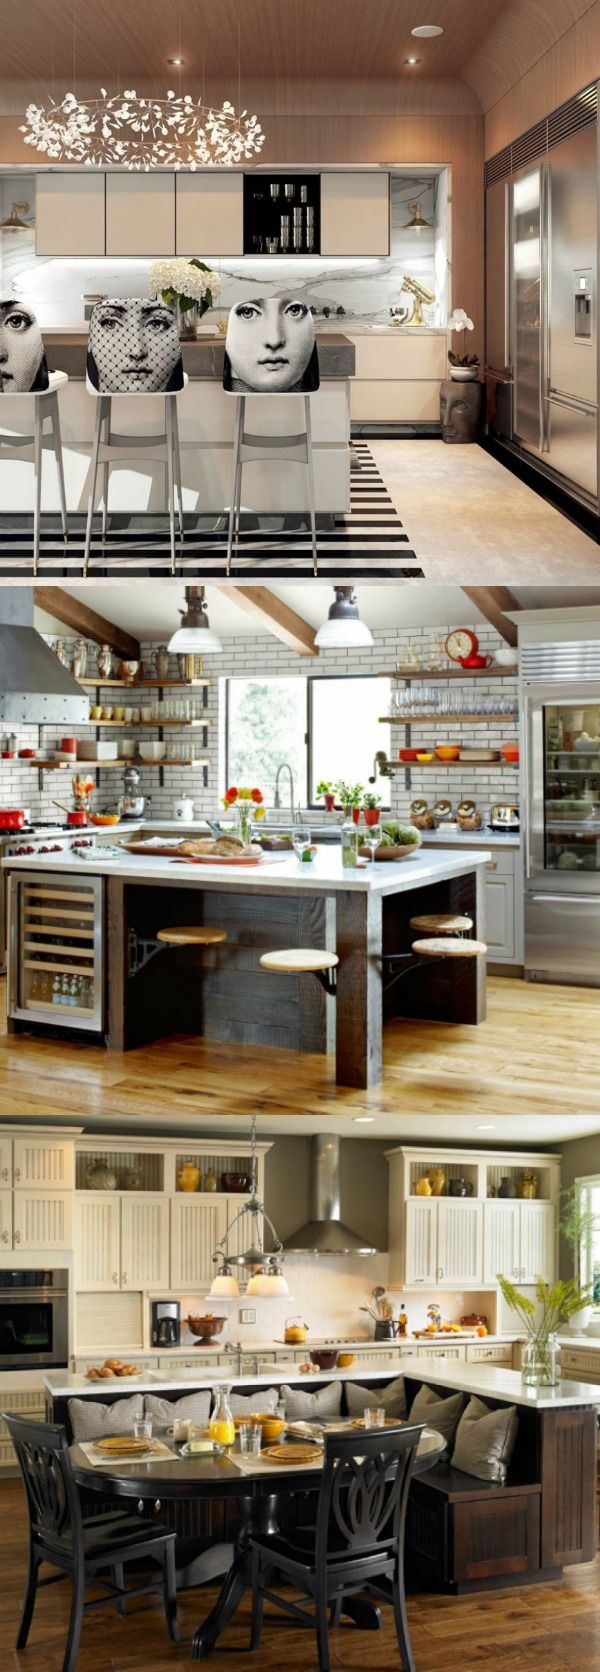 Amazing kitchen islands with seating, make your kitchen the center of the home | lovelyspaces.com